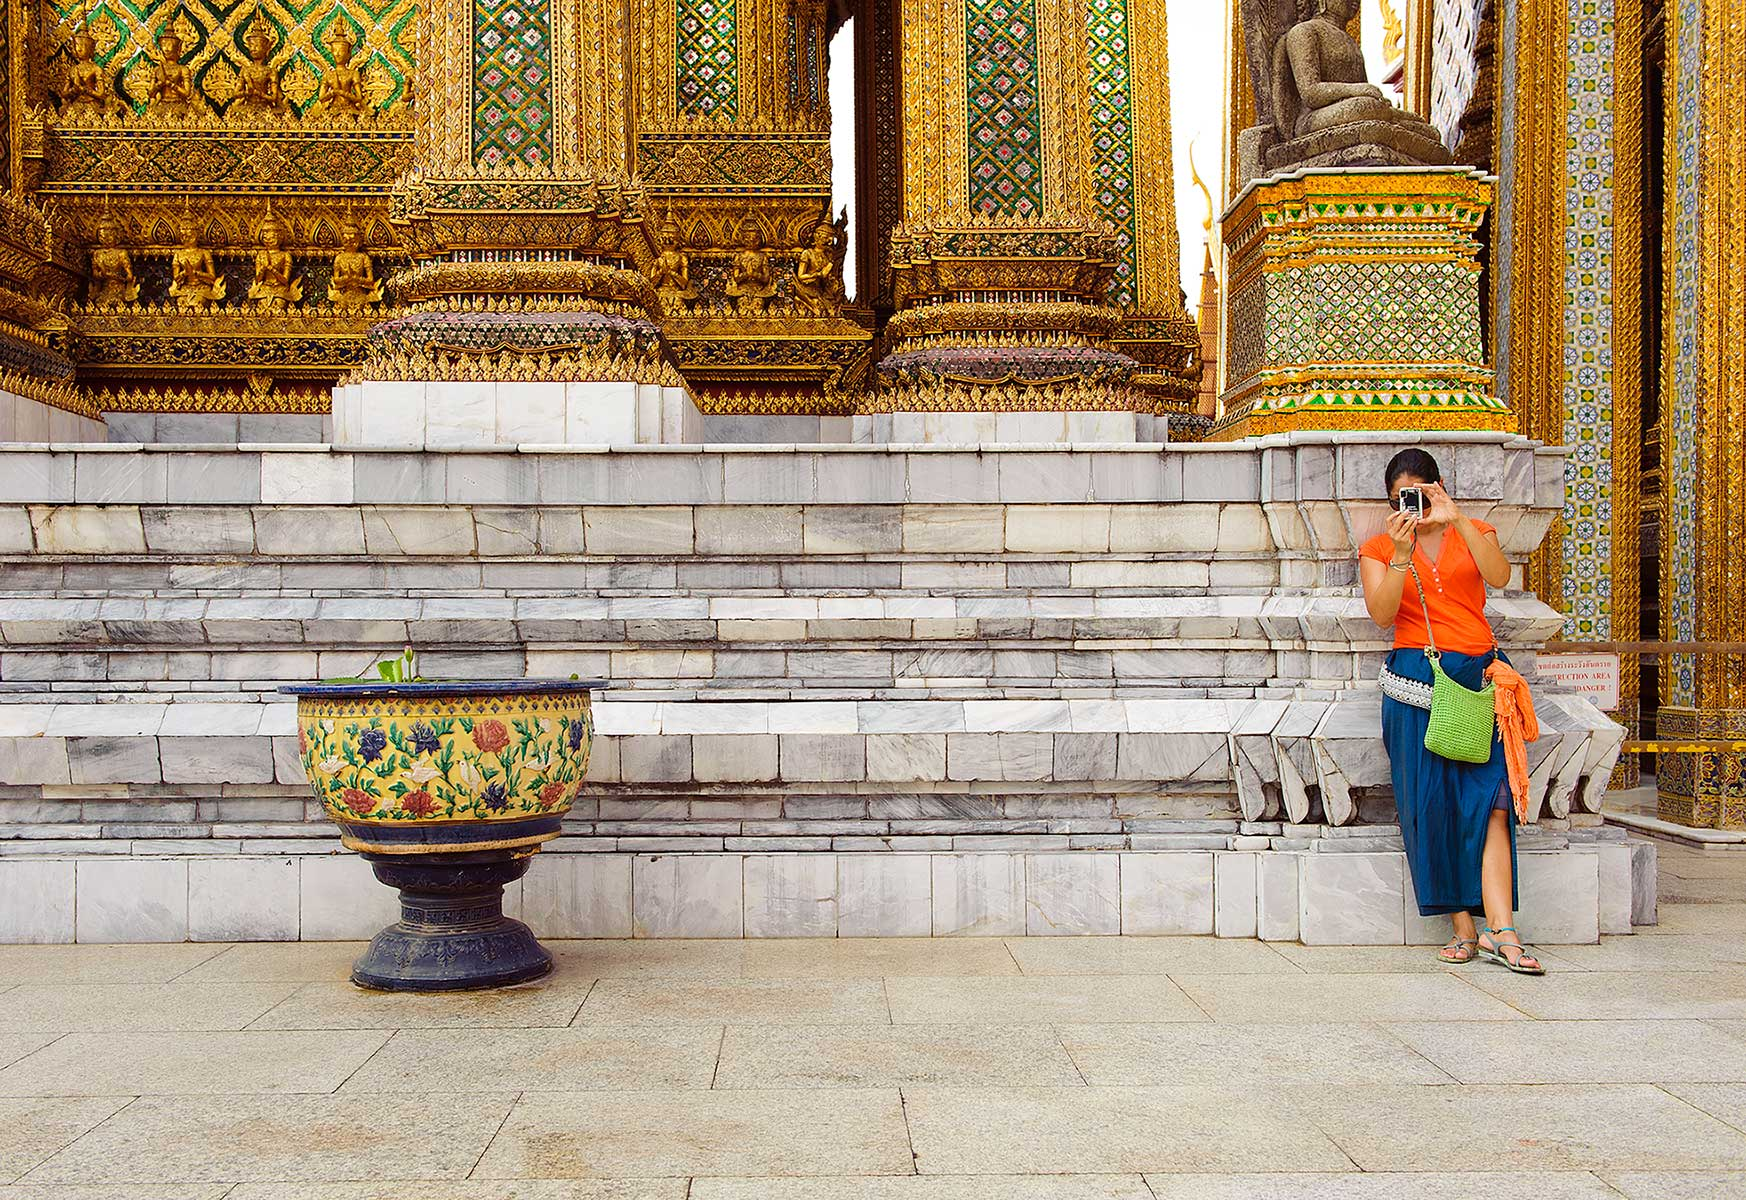 081ThailandGrandPalace3